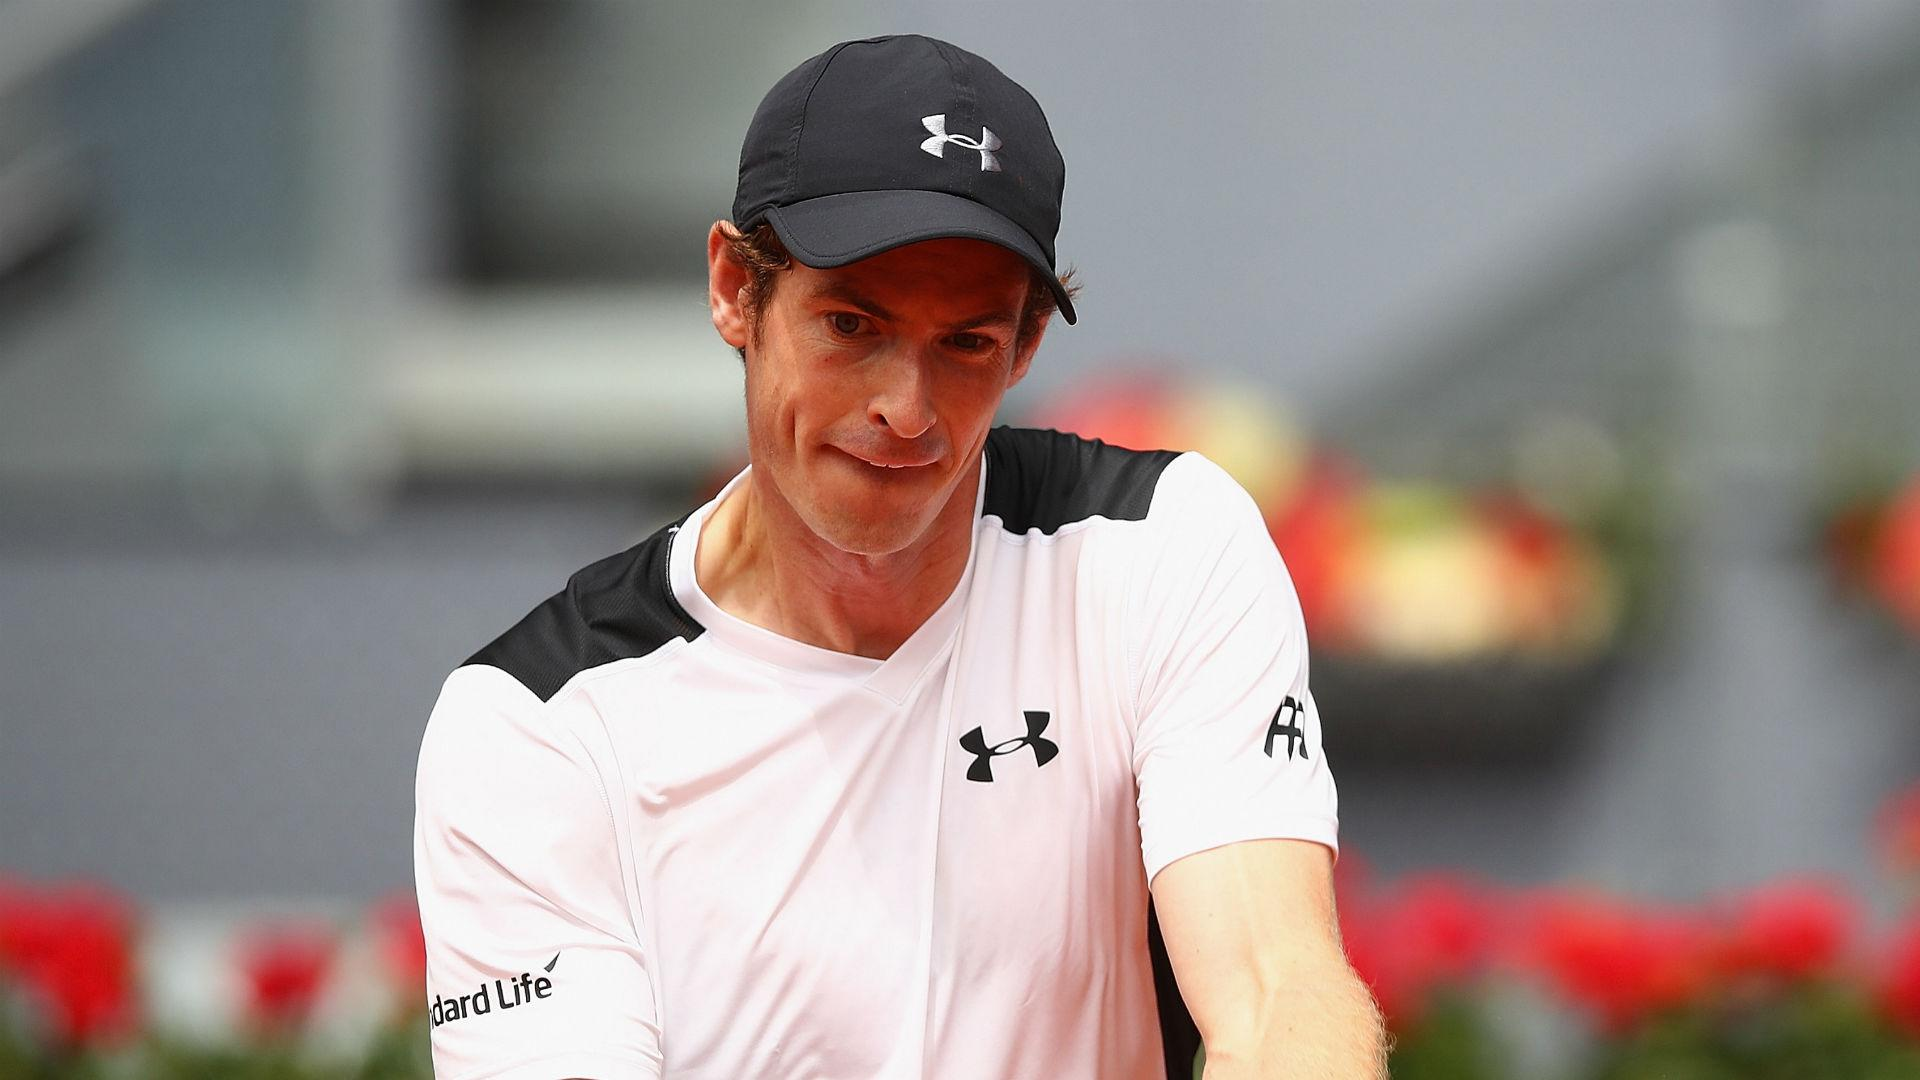 Murray steps up Madrid campaign with Simon win